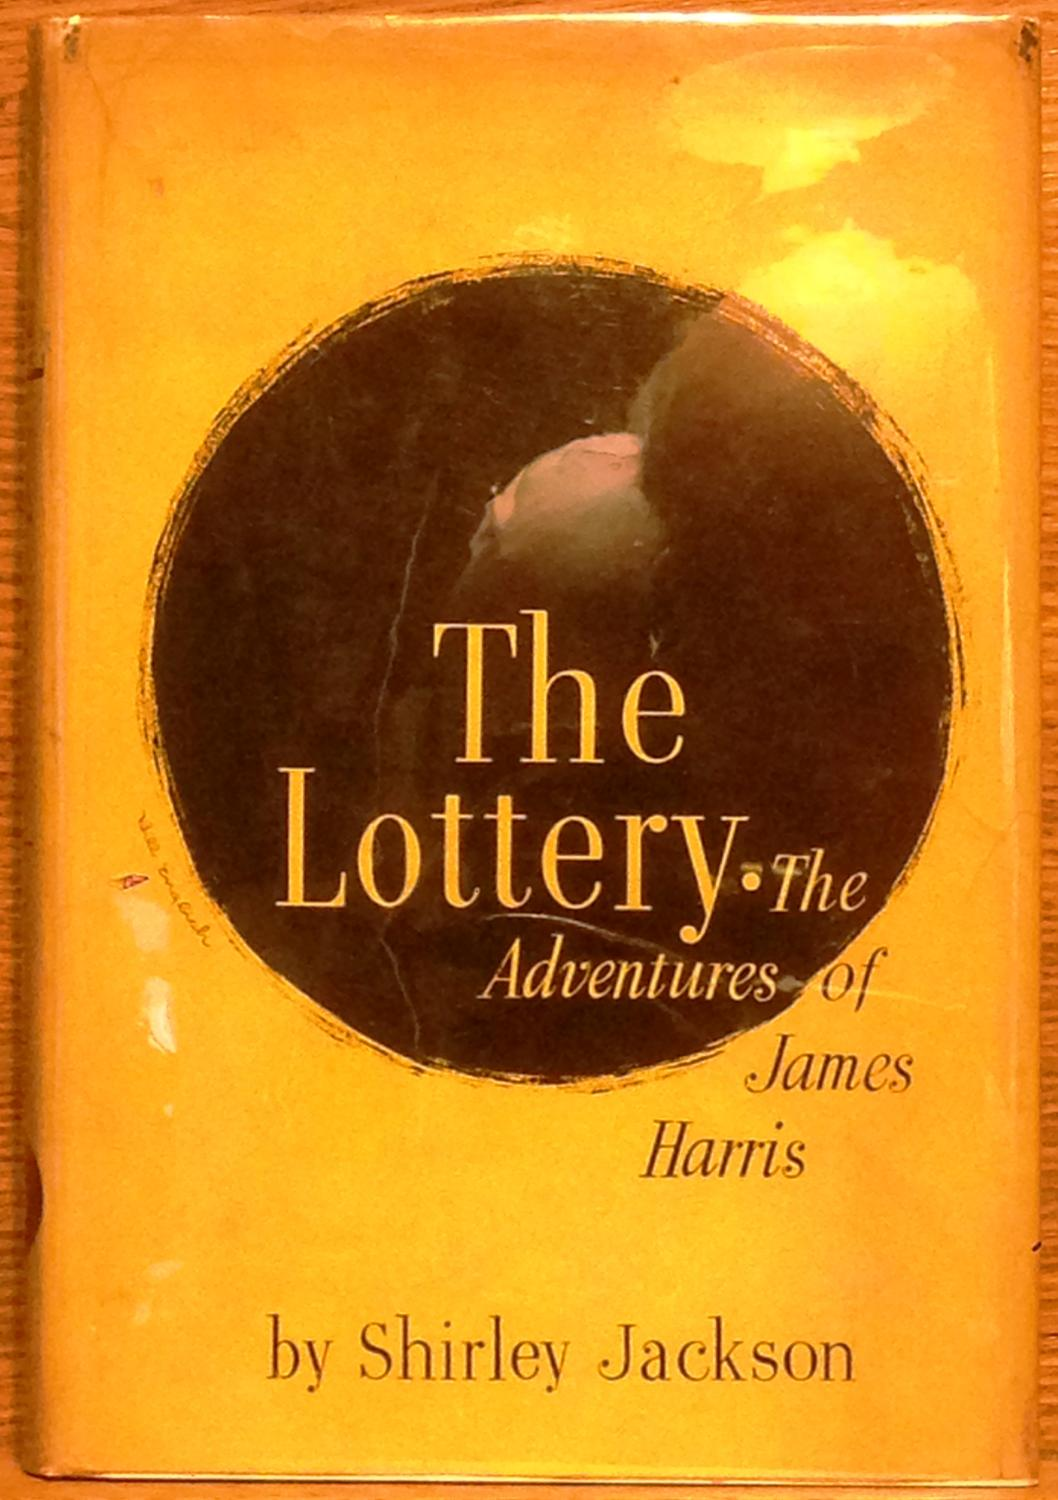 The Lottery: The Adventures of James Harris by Shirley Jackson ...